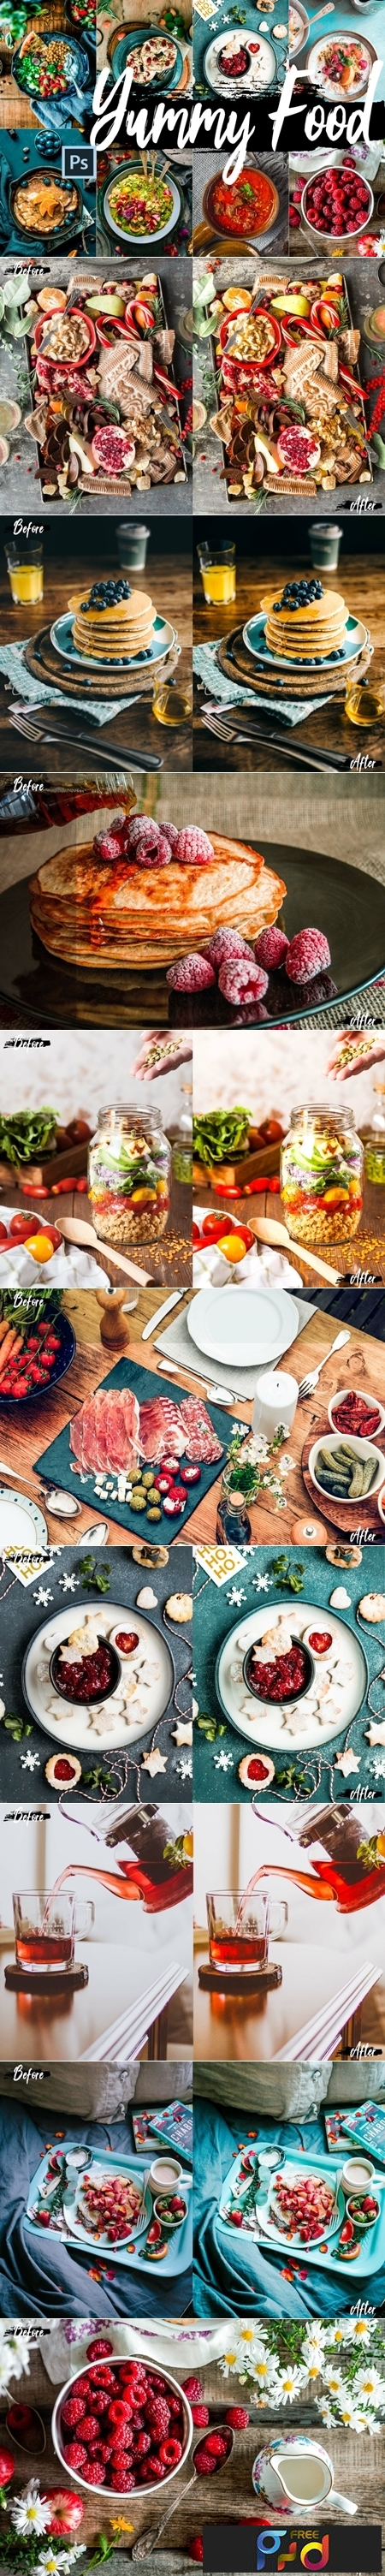 Yummy Food Theme Color Grading photoshop actions 1